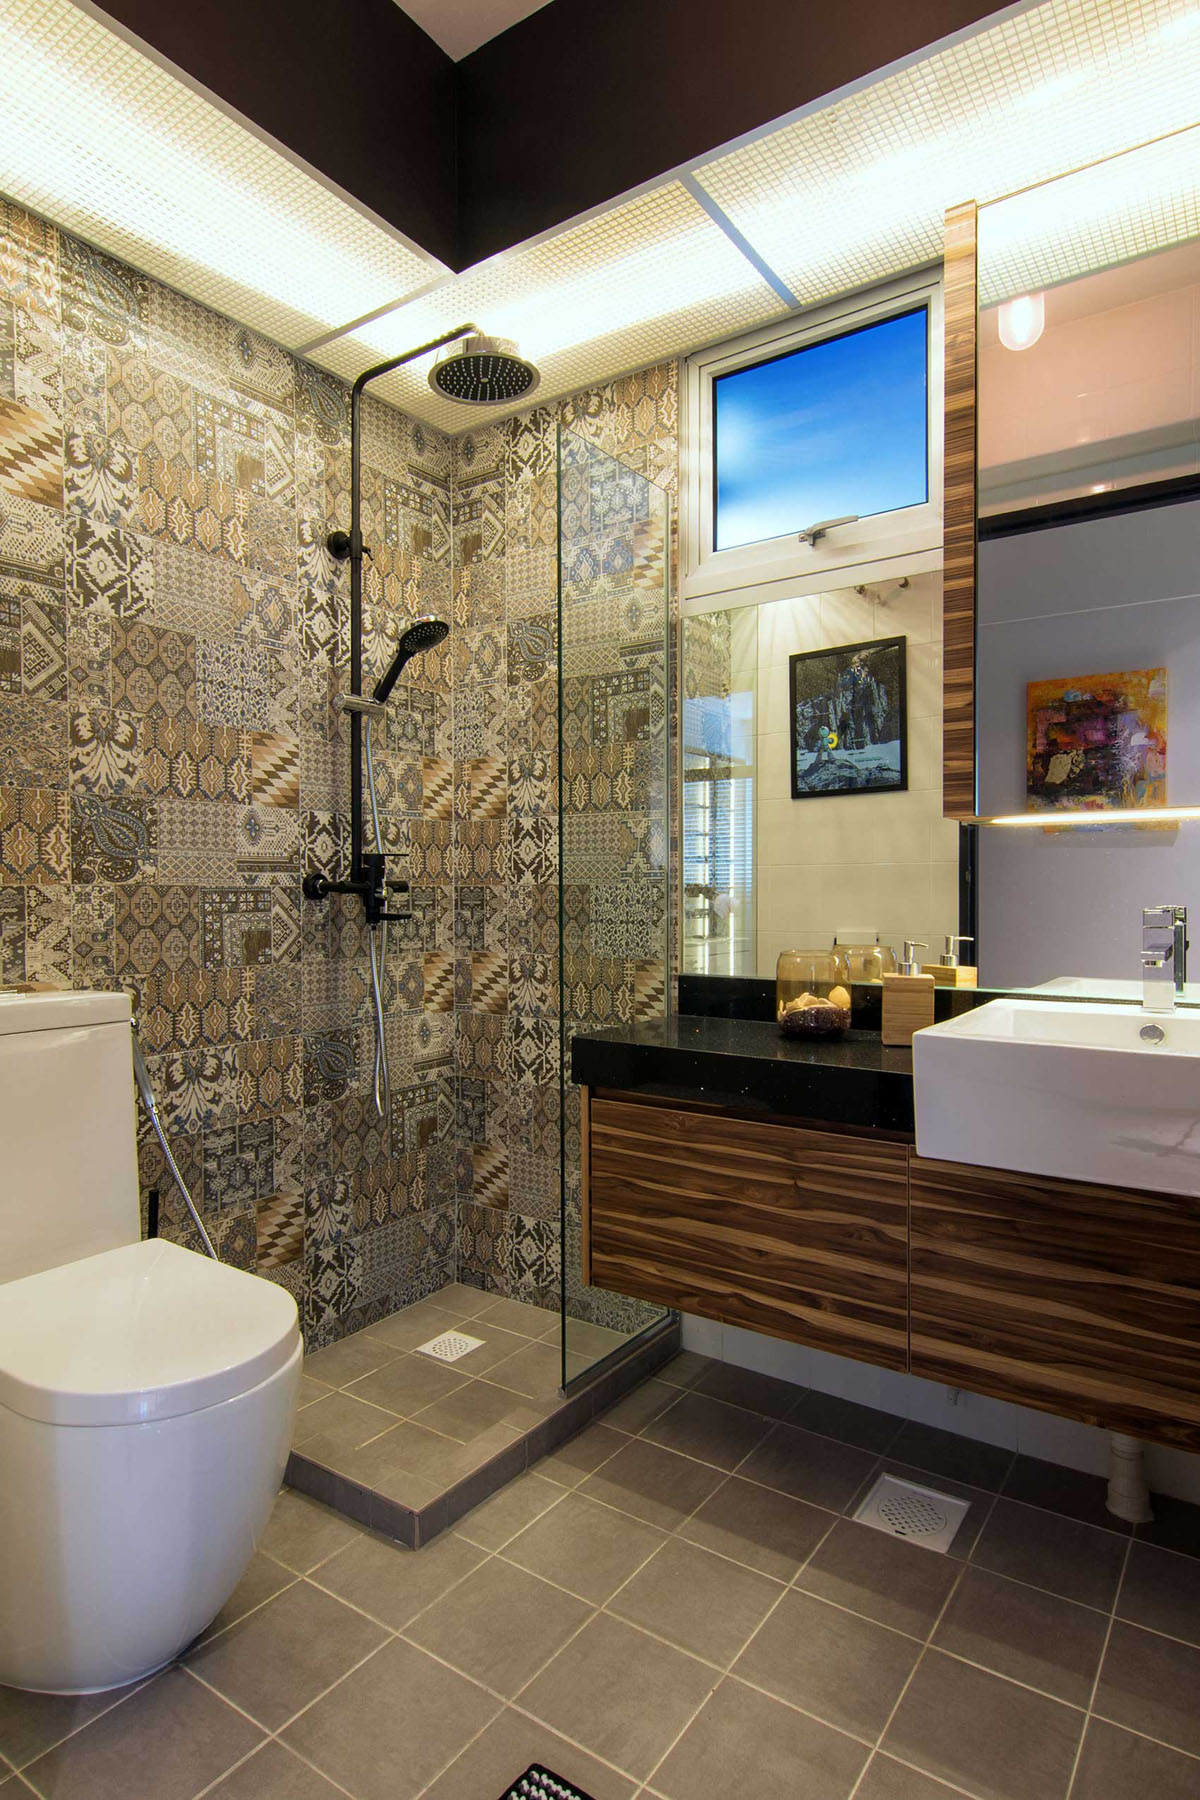 Bathroom Tiles Singapore cozy apartment in singapore with stylish elements | idesignarch